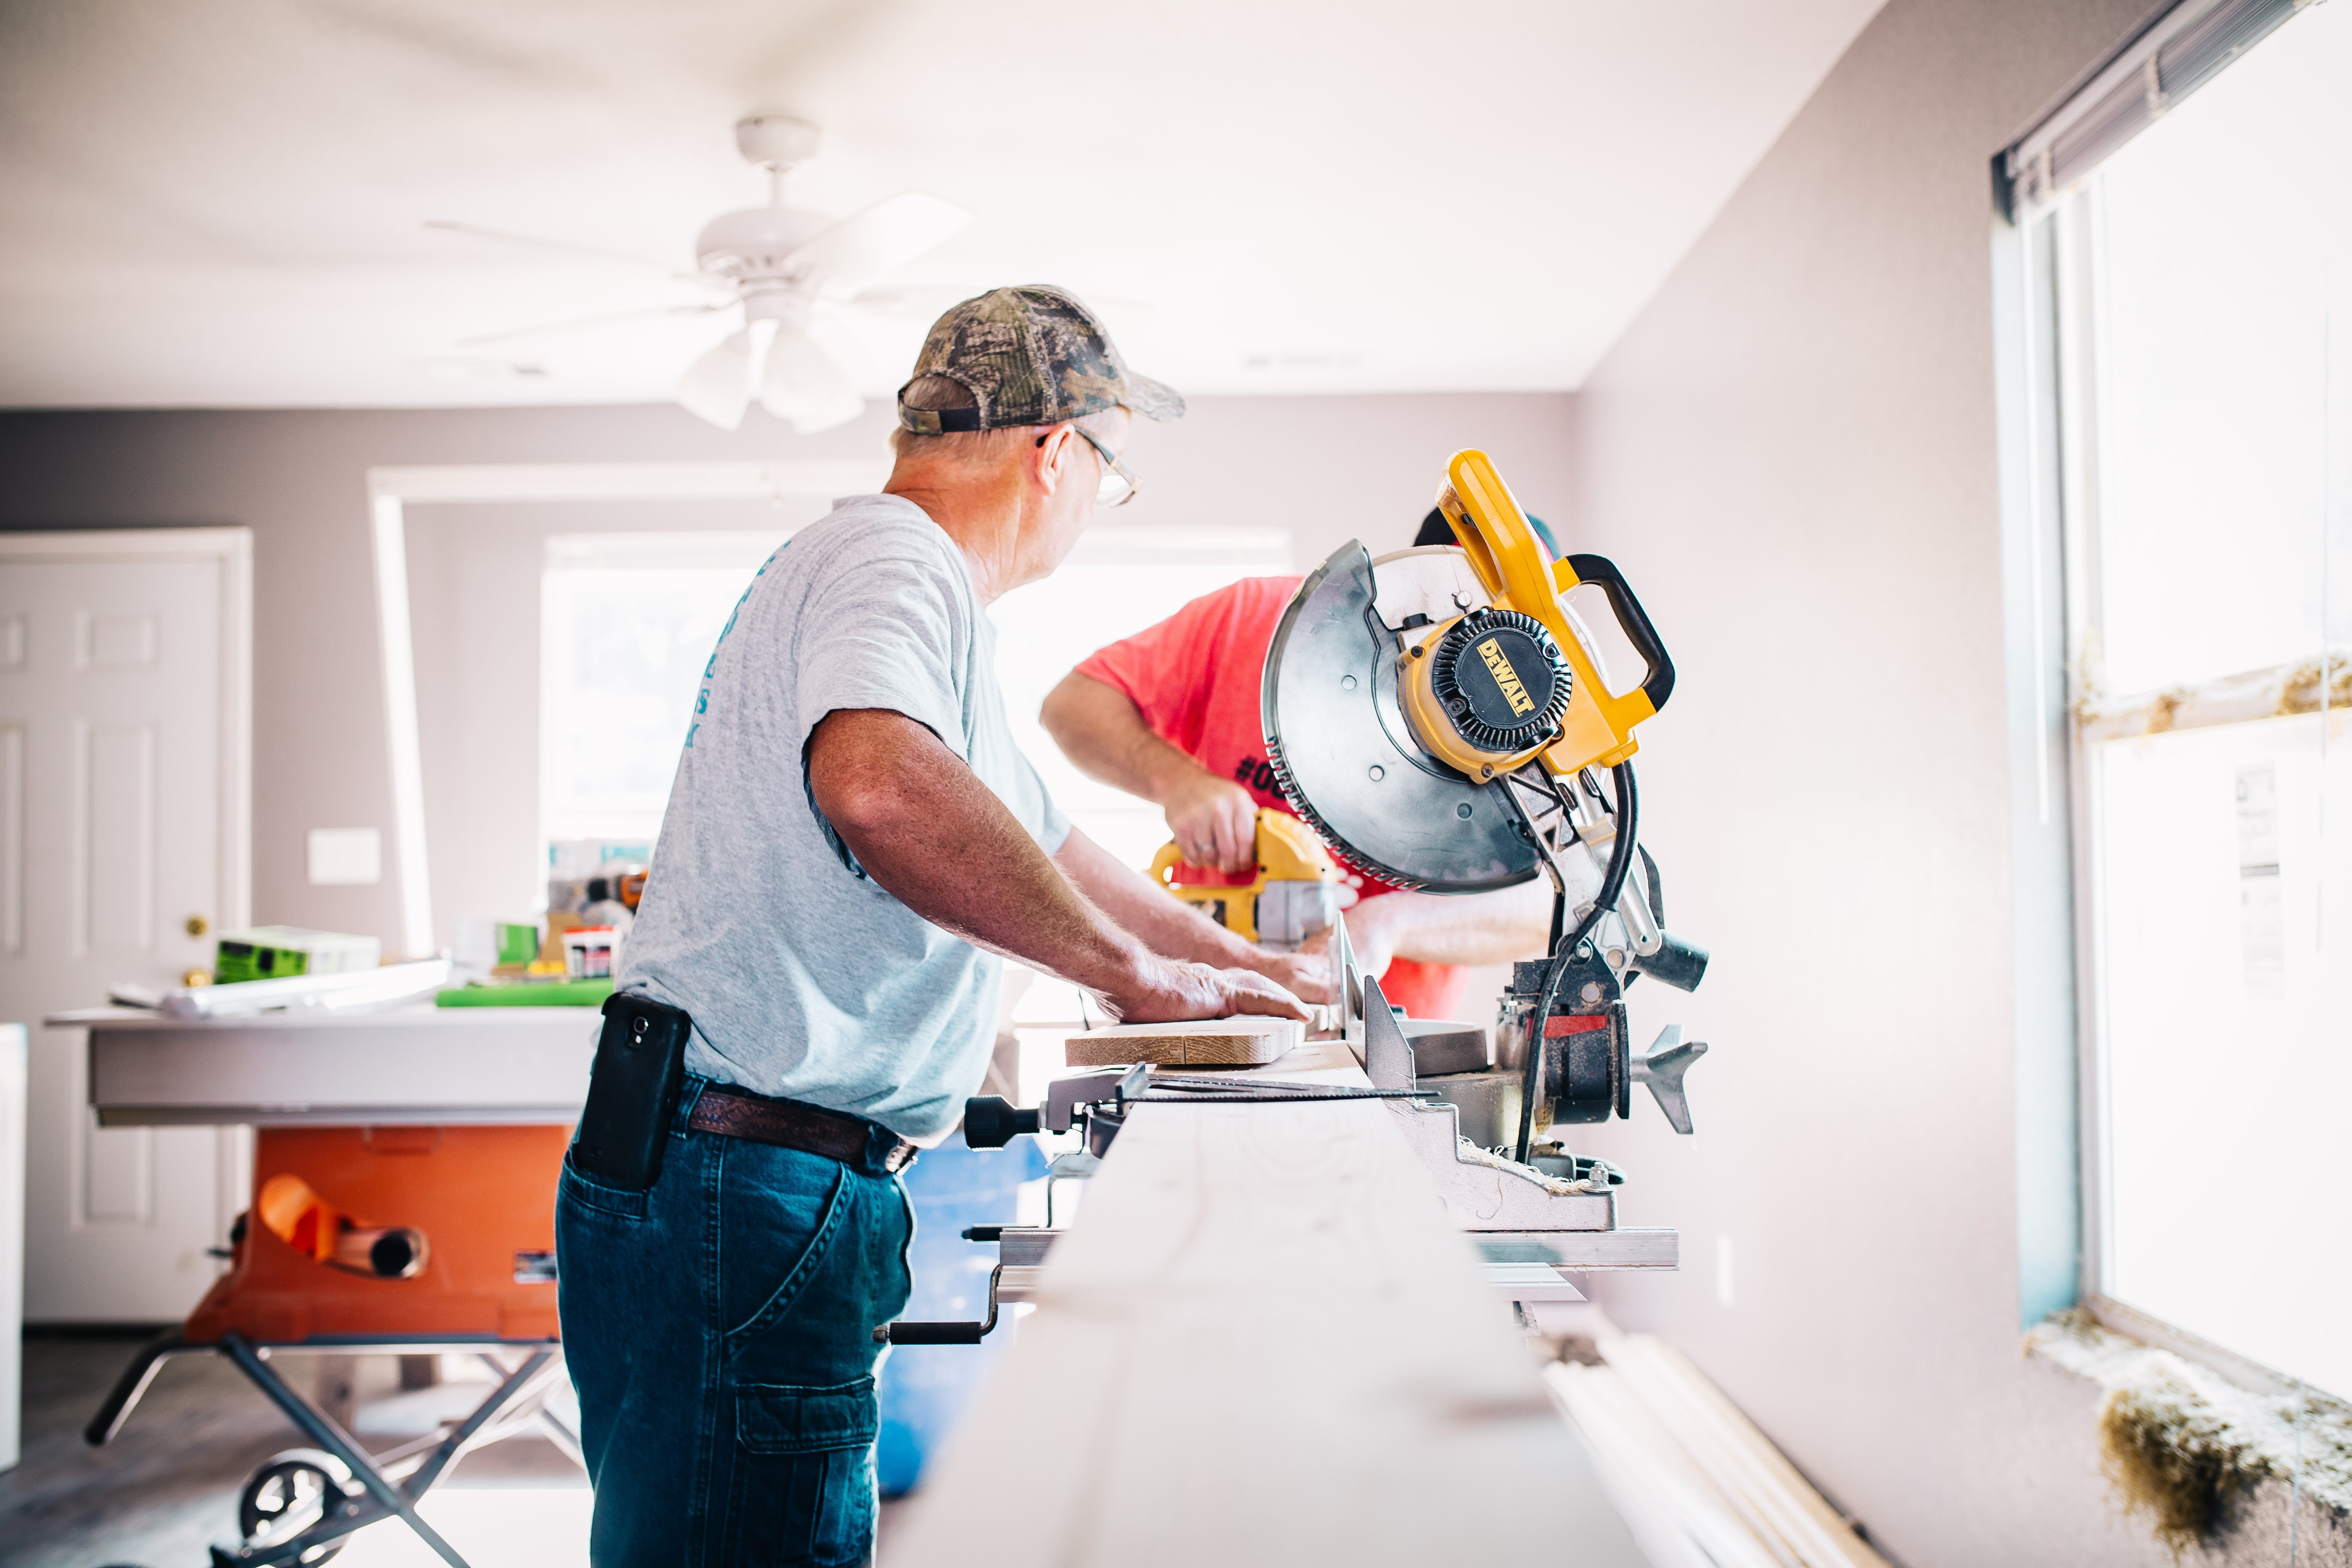 Home interior construction workers